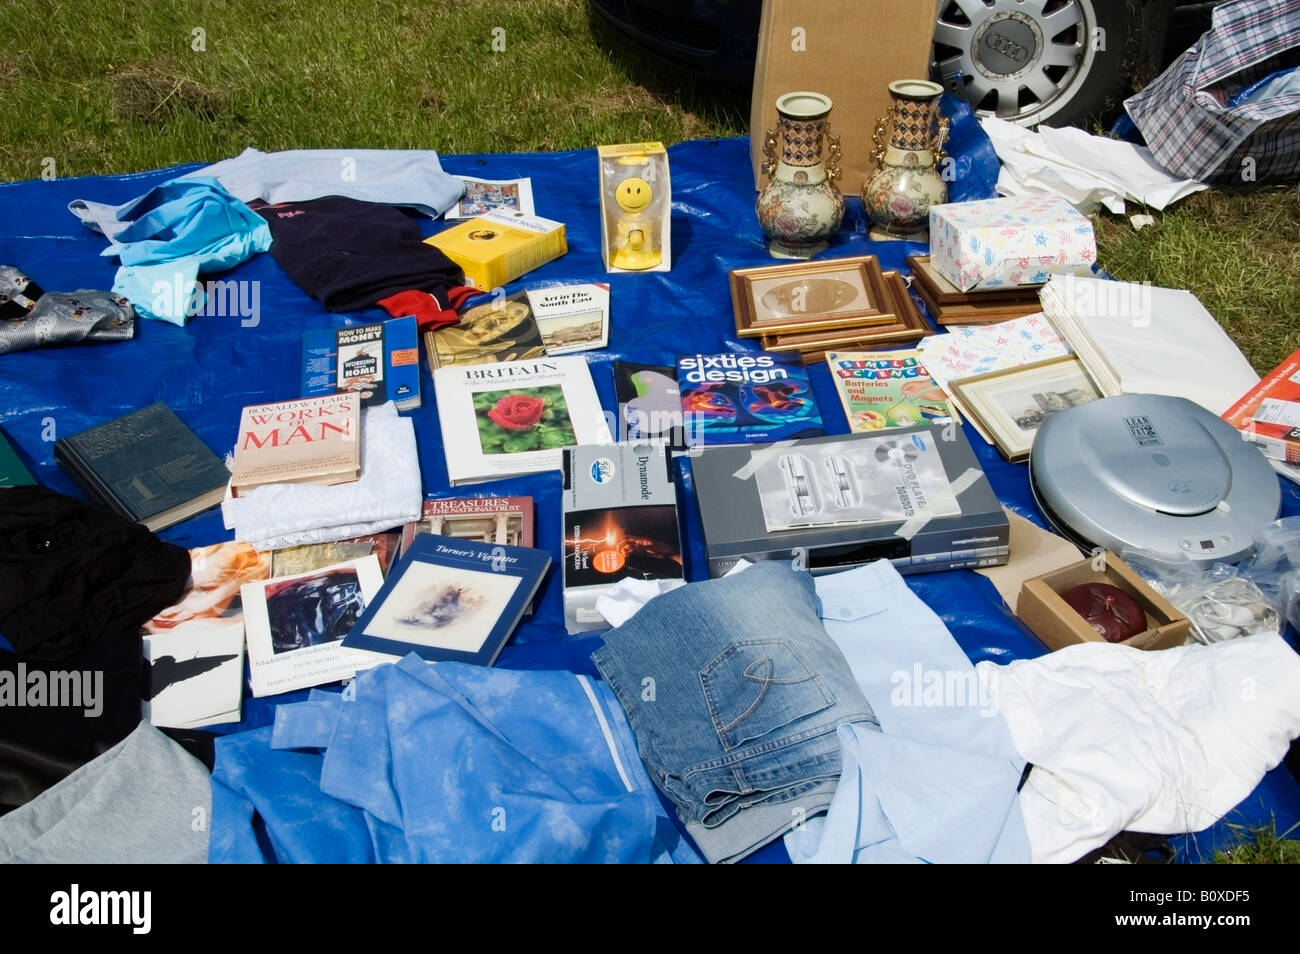 Various outdoor car boot, jumble sale items laid out on a blue ground sheet, spring, Essex, Great Britain, UK, Europe, - Stock Image